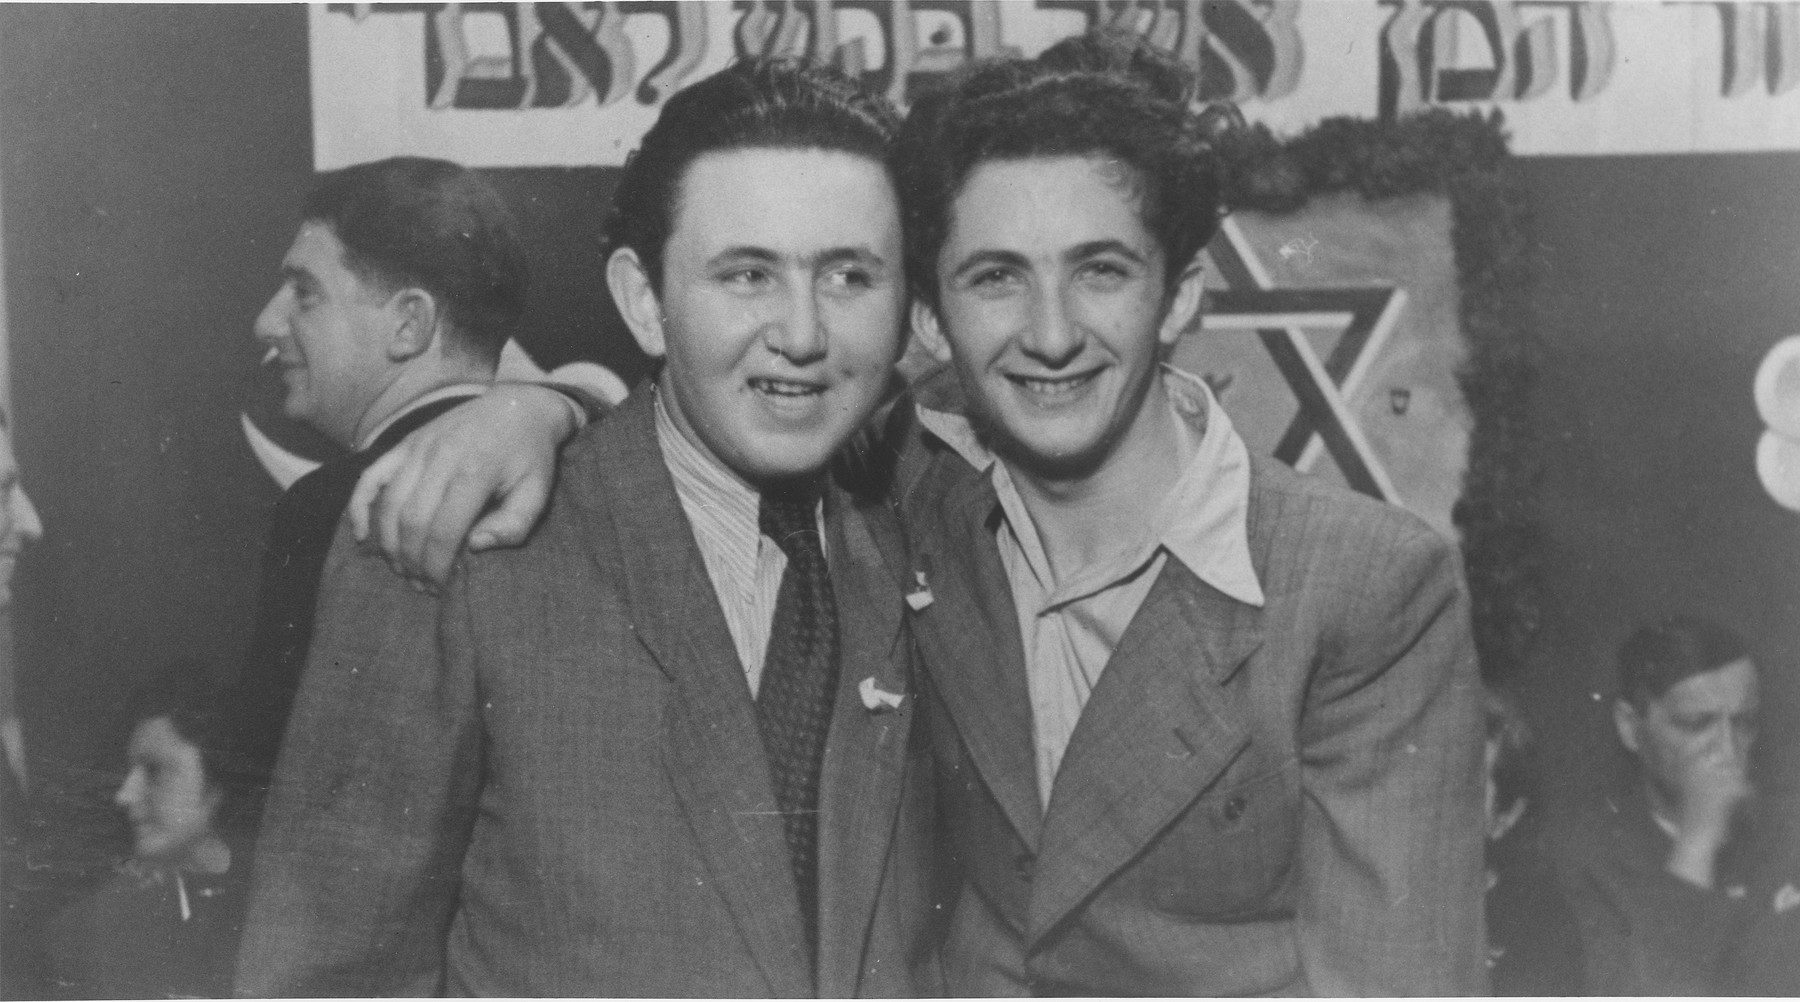 "Two young men pose at a Purim party in the Schlachtensee displaced persons camp.  Yeshayahu Zycer (left) and Mischa Gleiberman (right) stand beneath a Hebrew banner that reads, ""Cursed be Haman who tried to kill me."" (a quotation from the Book of Esther recited on the holiday of Purim)."